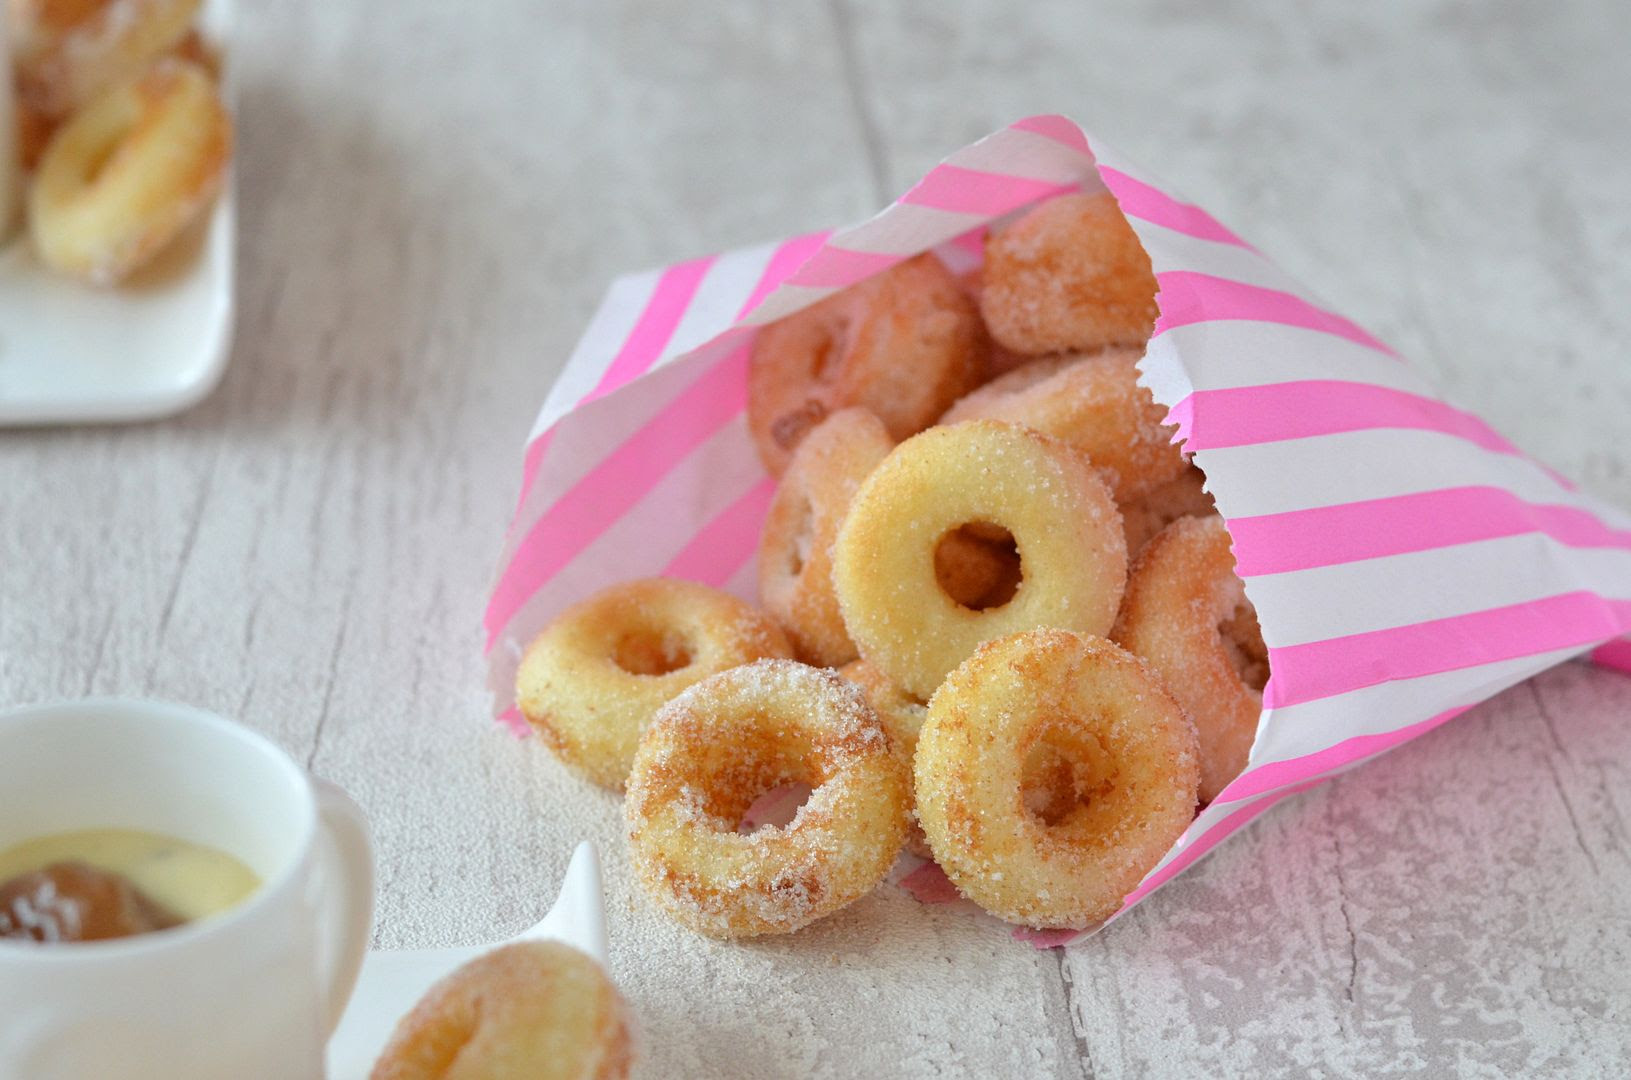 Mini Baked Doughnuts with Rhubarb & Custard Dip